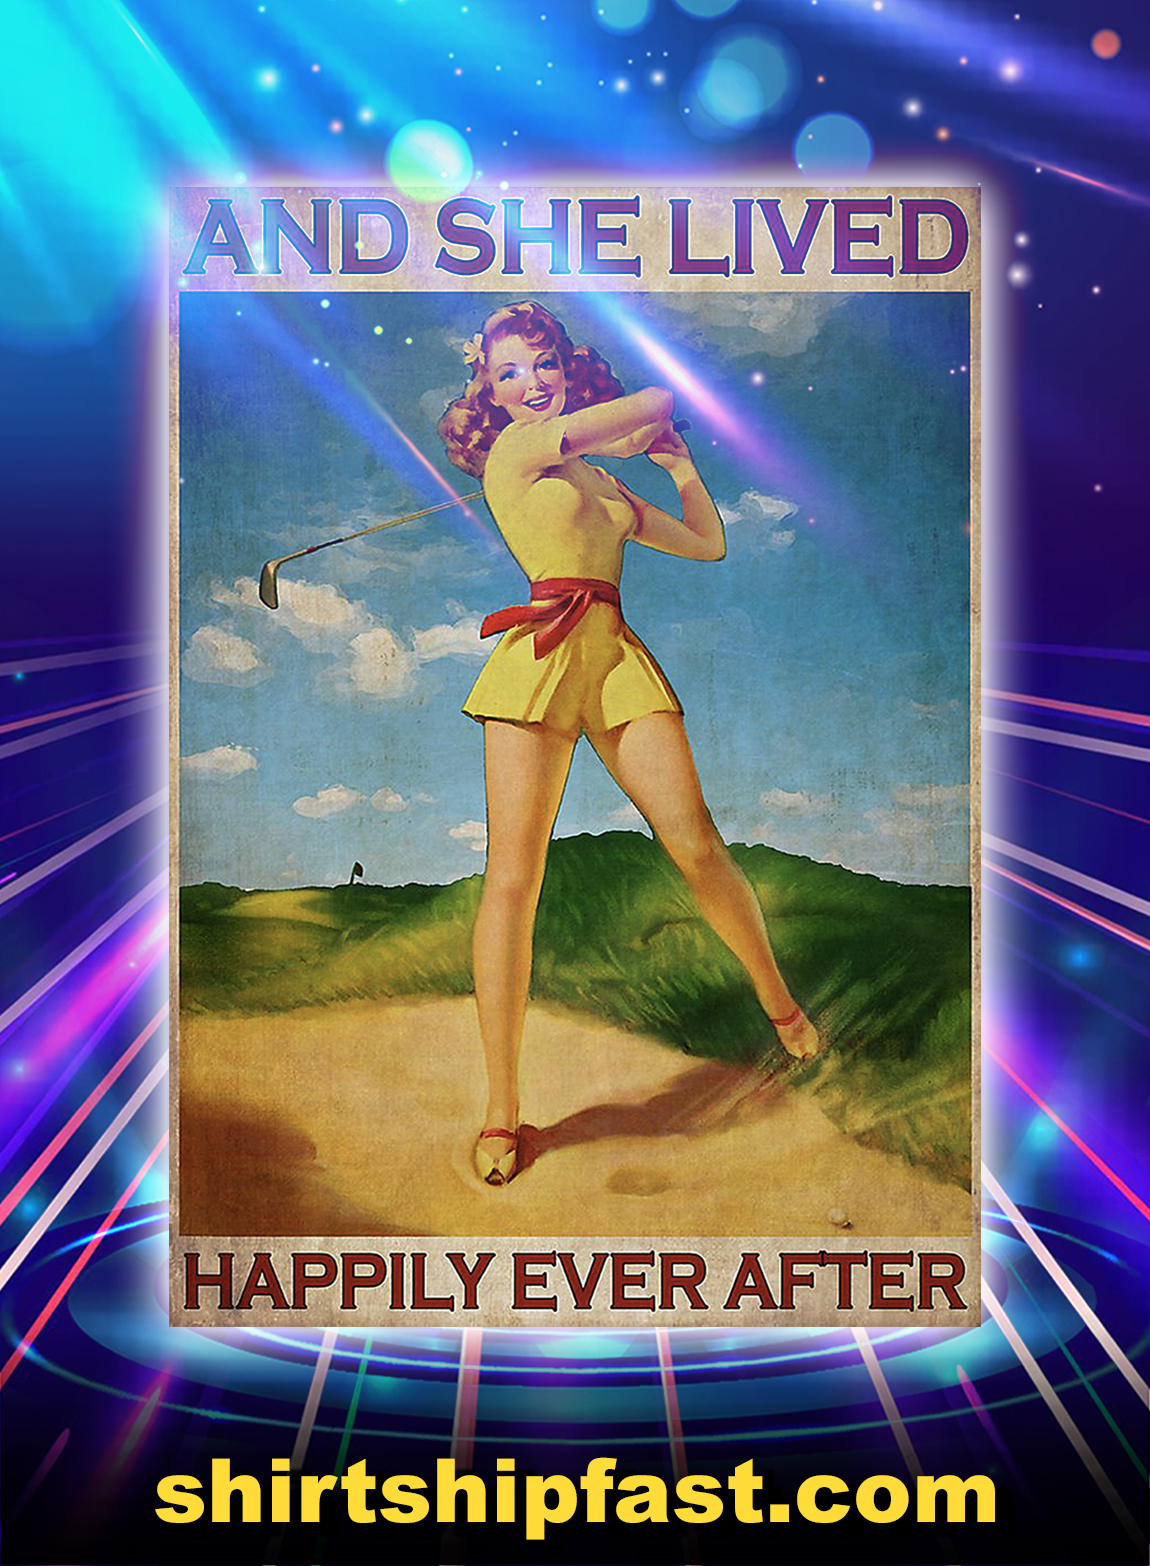 Golf and she lived happily ever after poster - A3